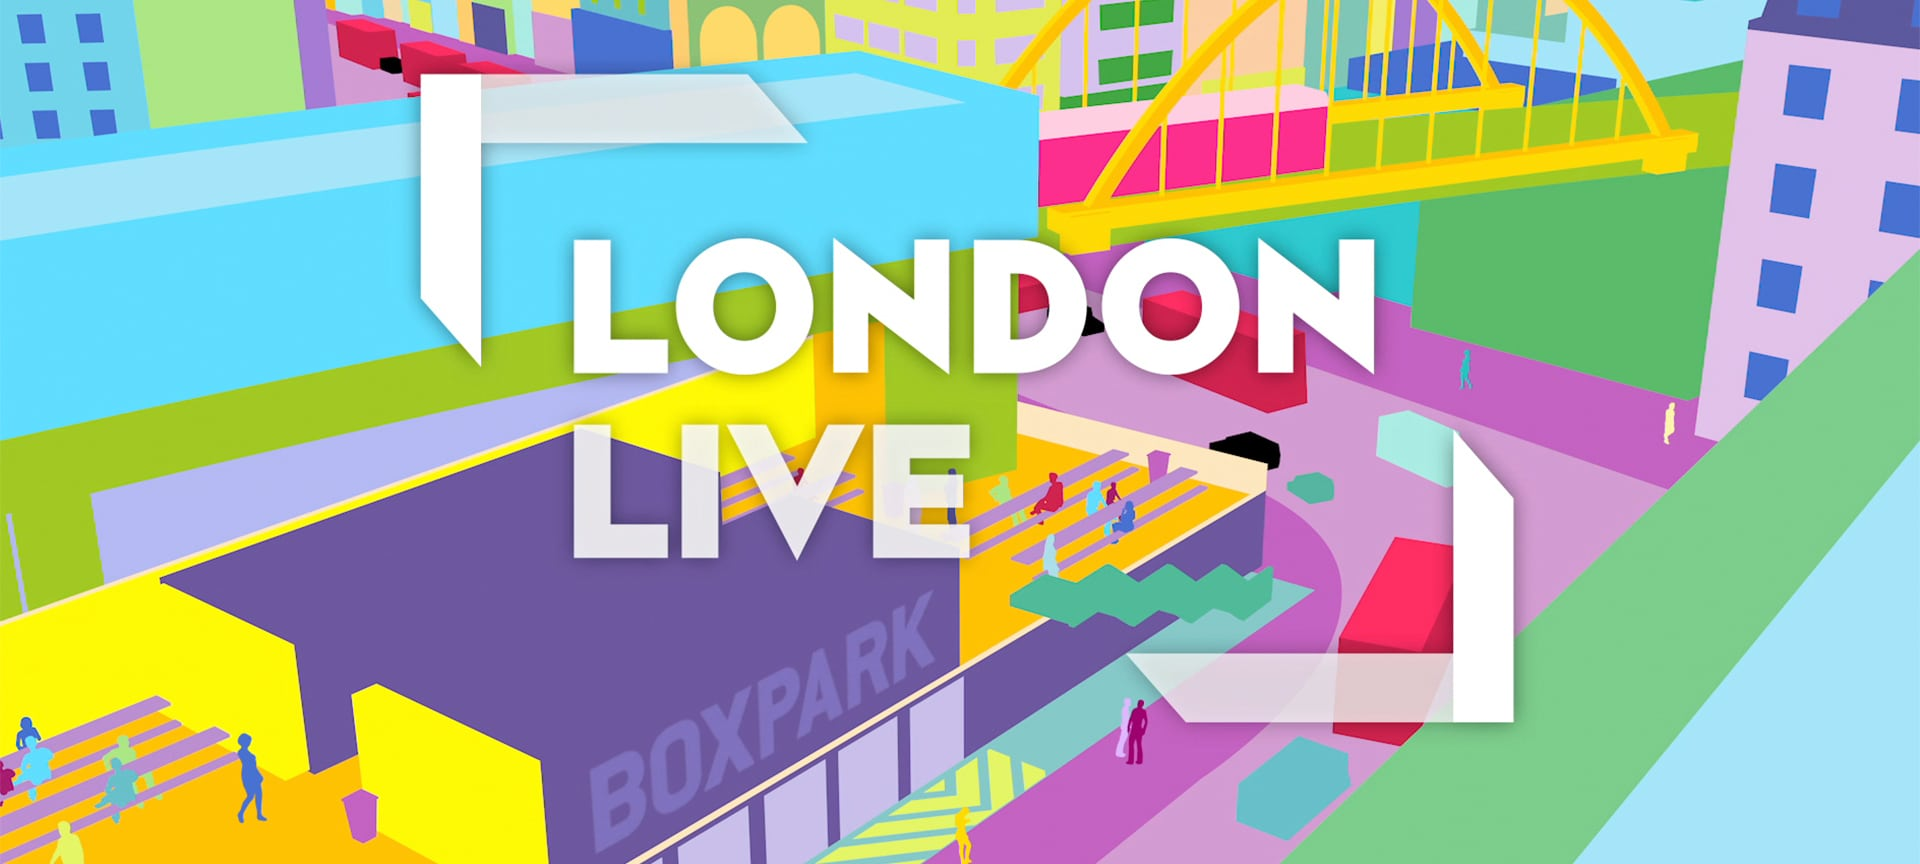 Illustrations of The Thames, Oxford Circus, East London's Boxpark and The City have been brought to life as animated idents for London Live.